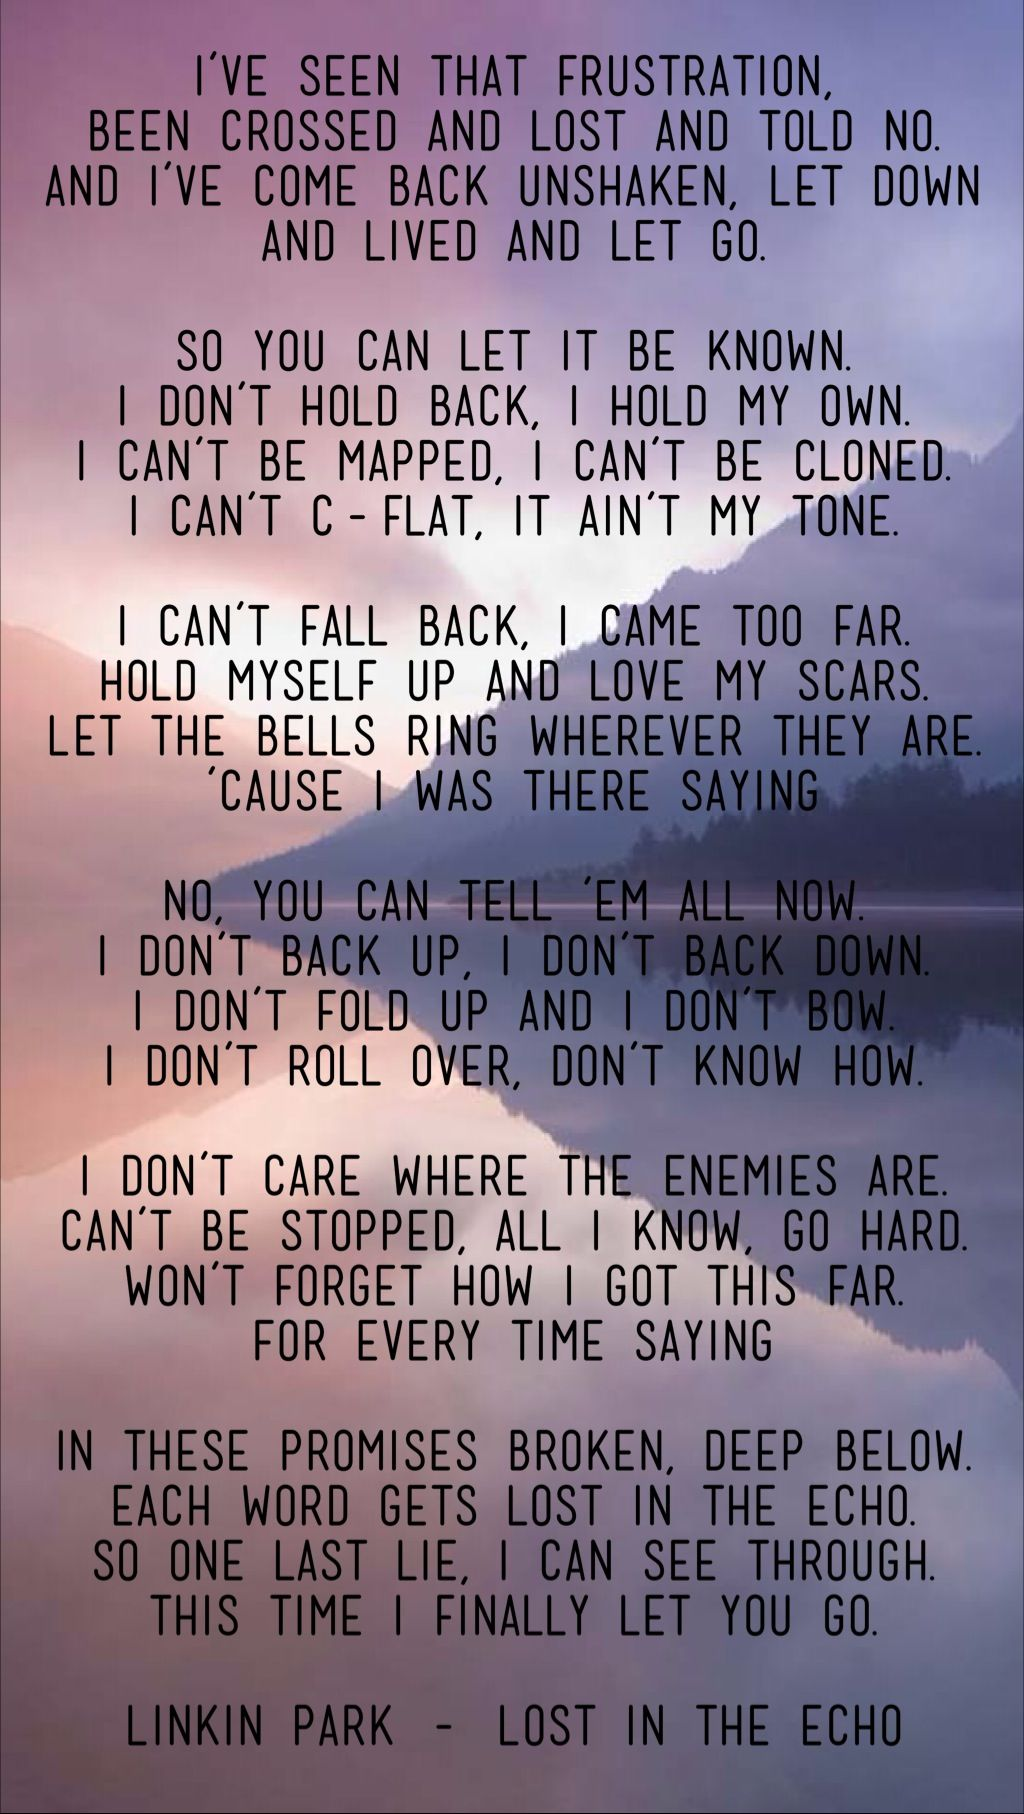 So back to what i was saying lyrics